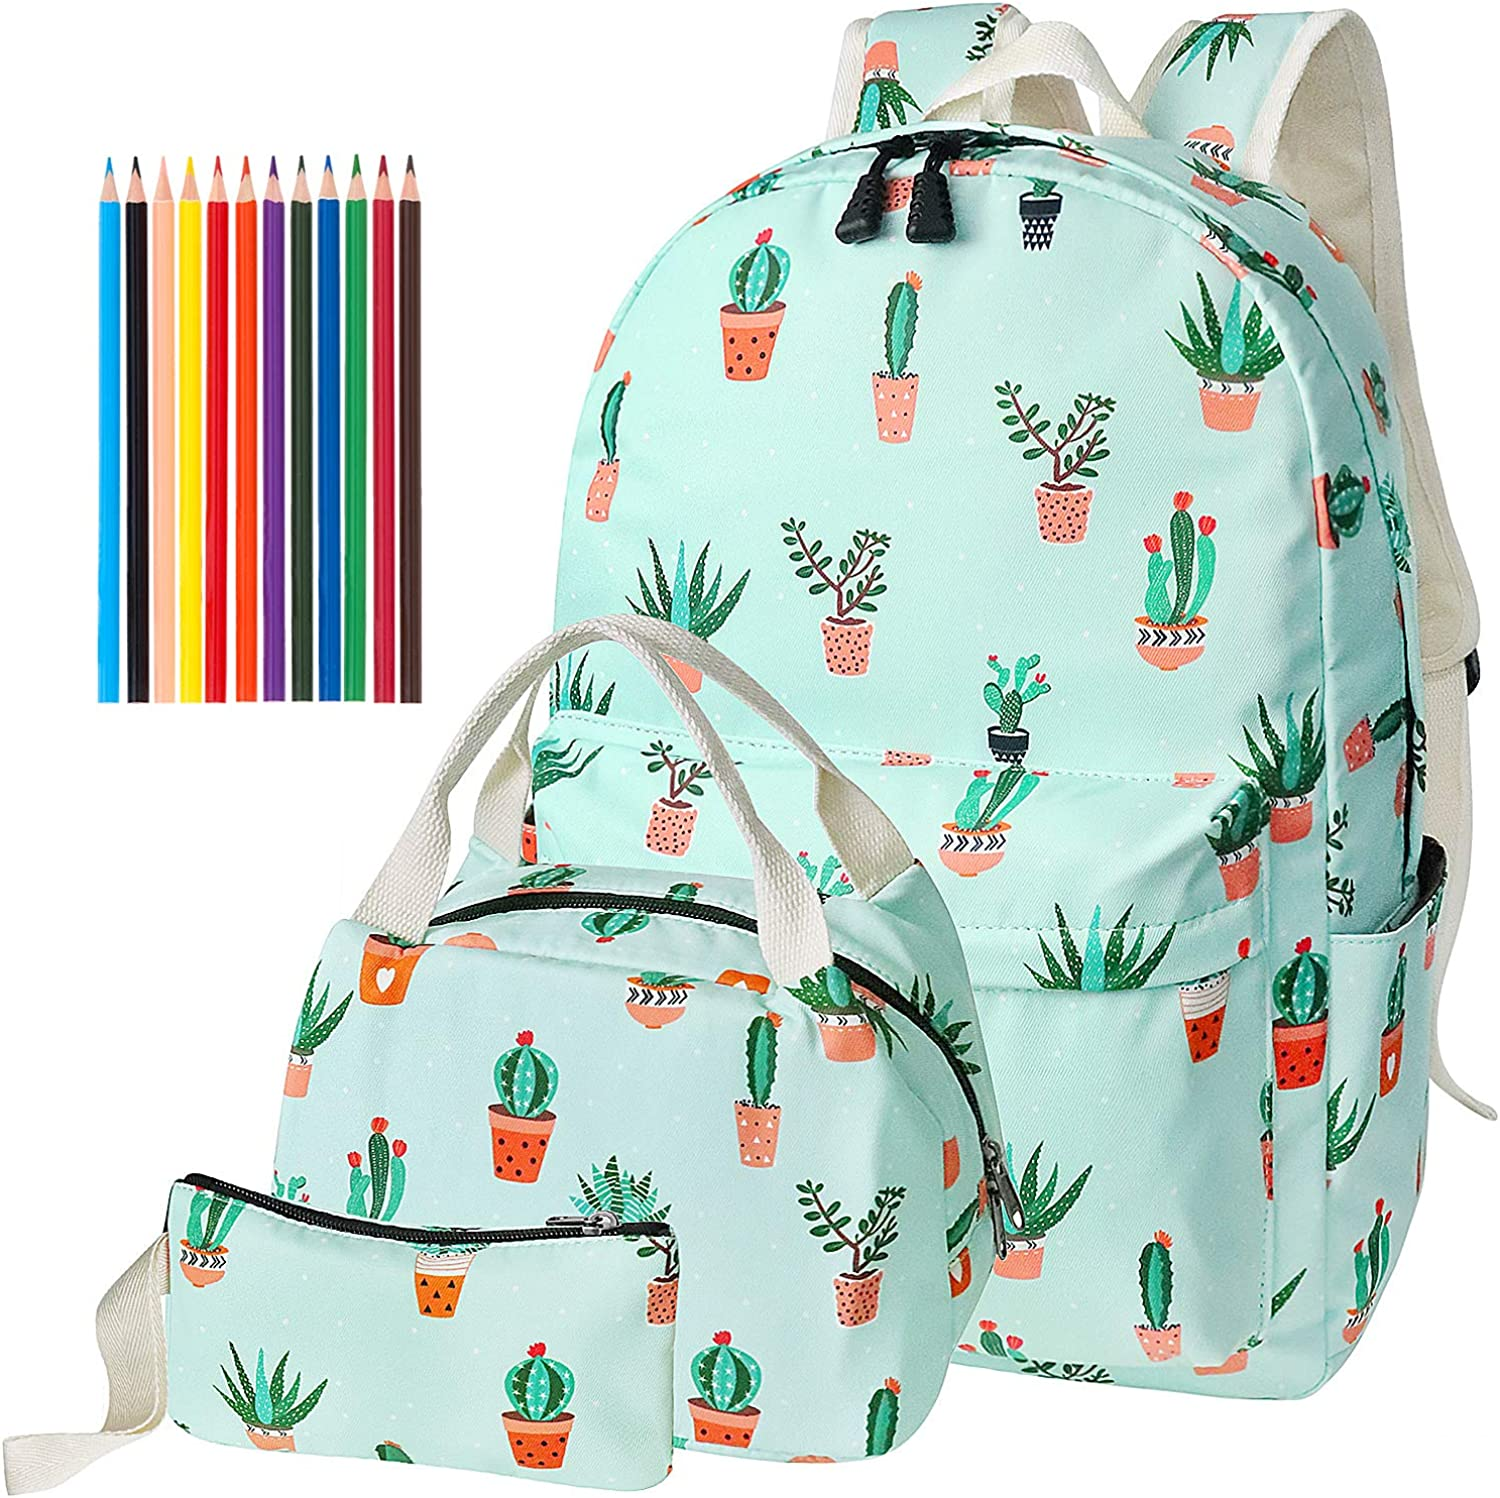 Teen Girls School Backpack, School Bag Bookbags with Lunch Box Pencil Case